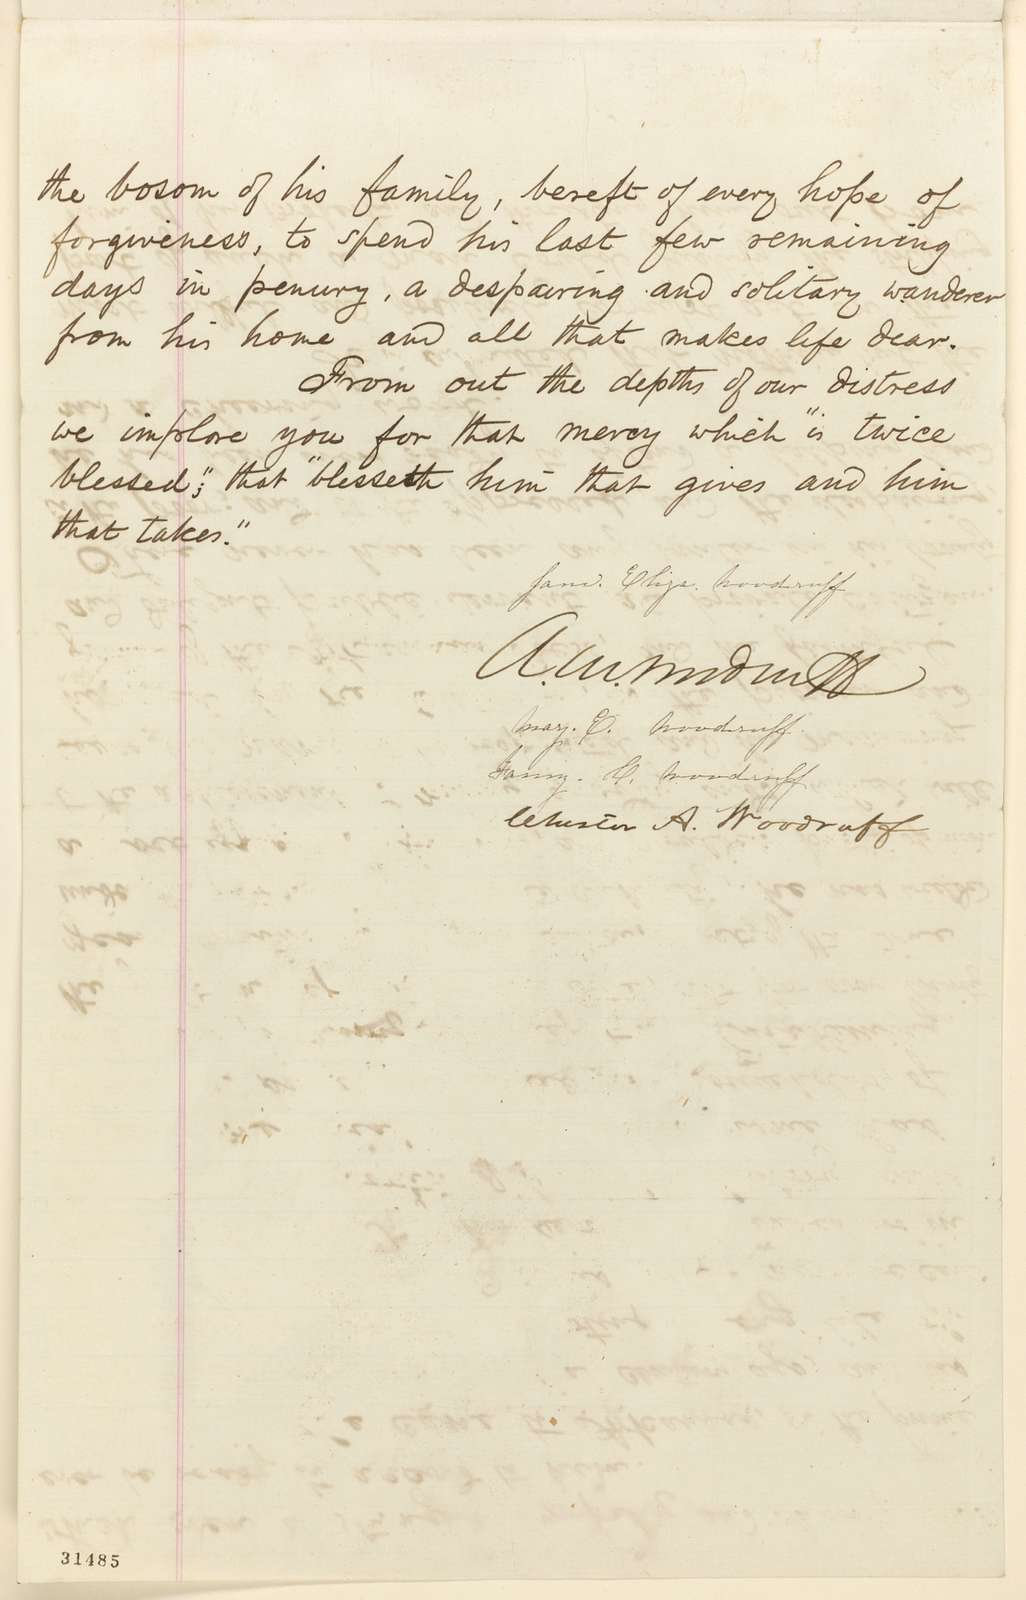 Abraham Lincoln papers: Series 1. General Correspondence. 1833-1916: Jane E. Woodruff, et al. to Abraham Lincoln, Friday, March 11, 1864 (Request pardon for William E. Woodruff)